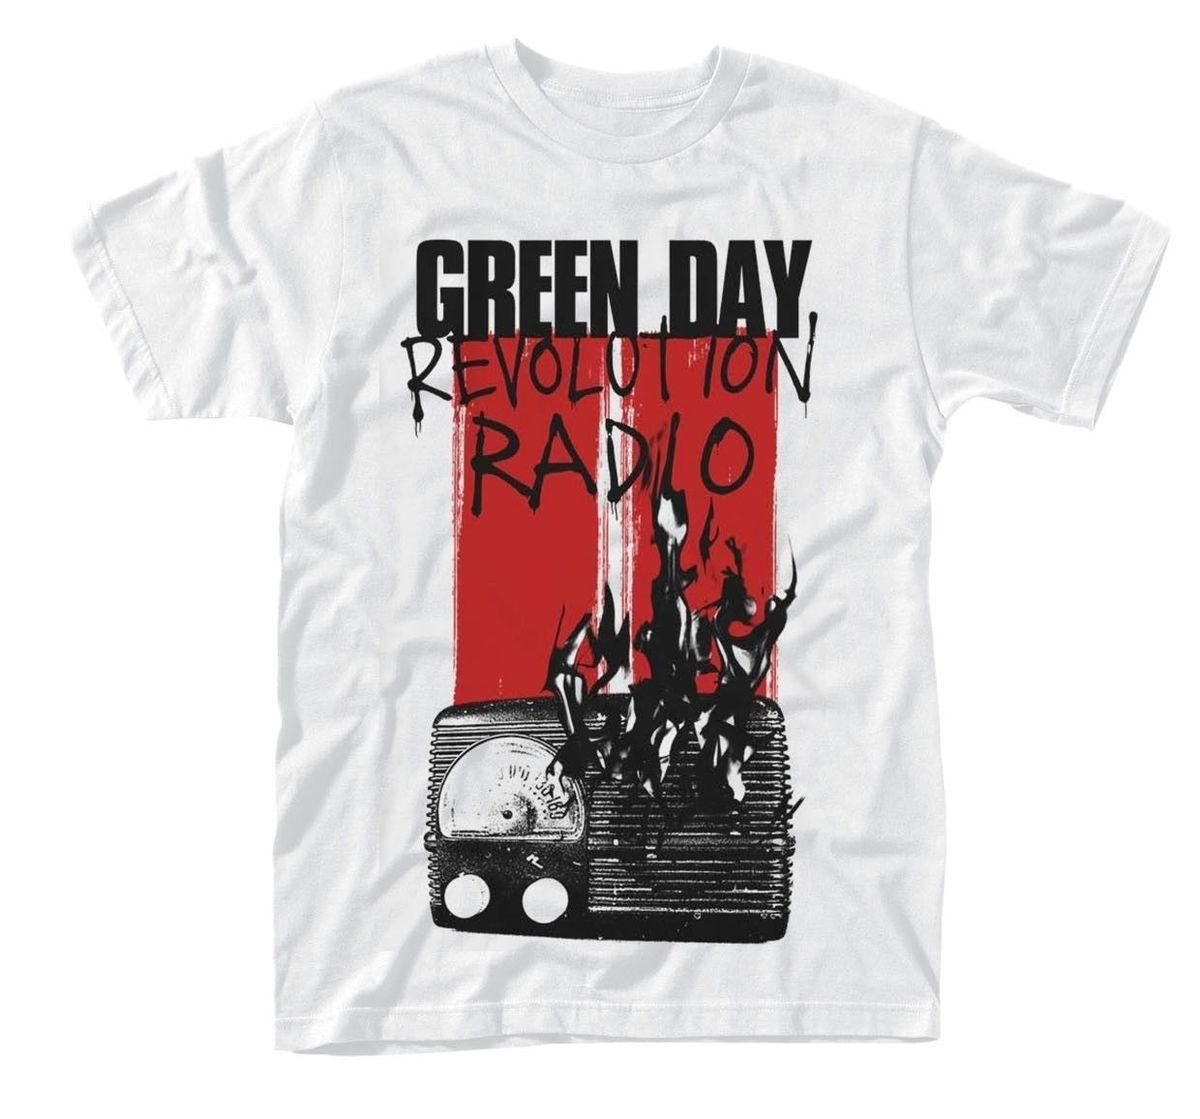 ba84ef7e Green Day 'Radio Combustion' T shirt - NEW customized your own design funny  shirt